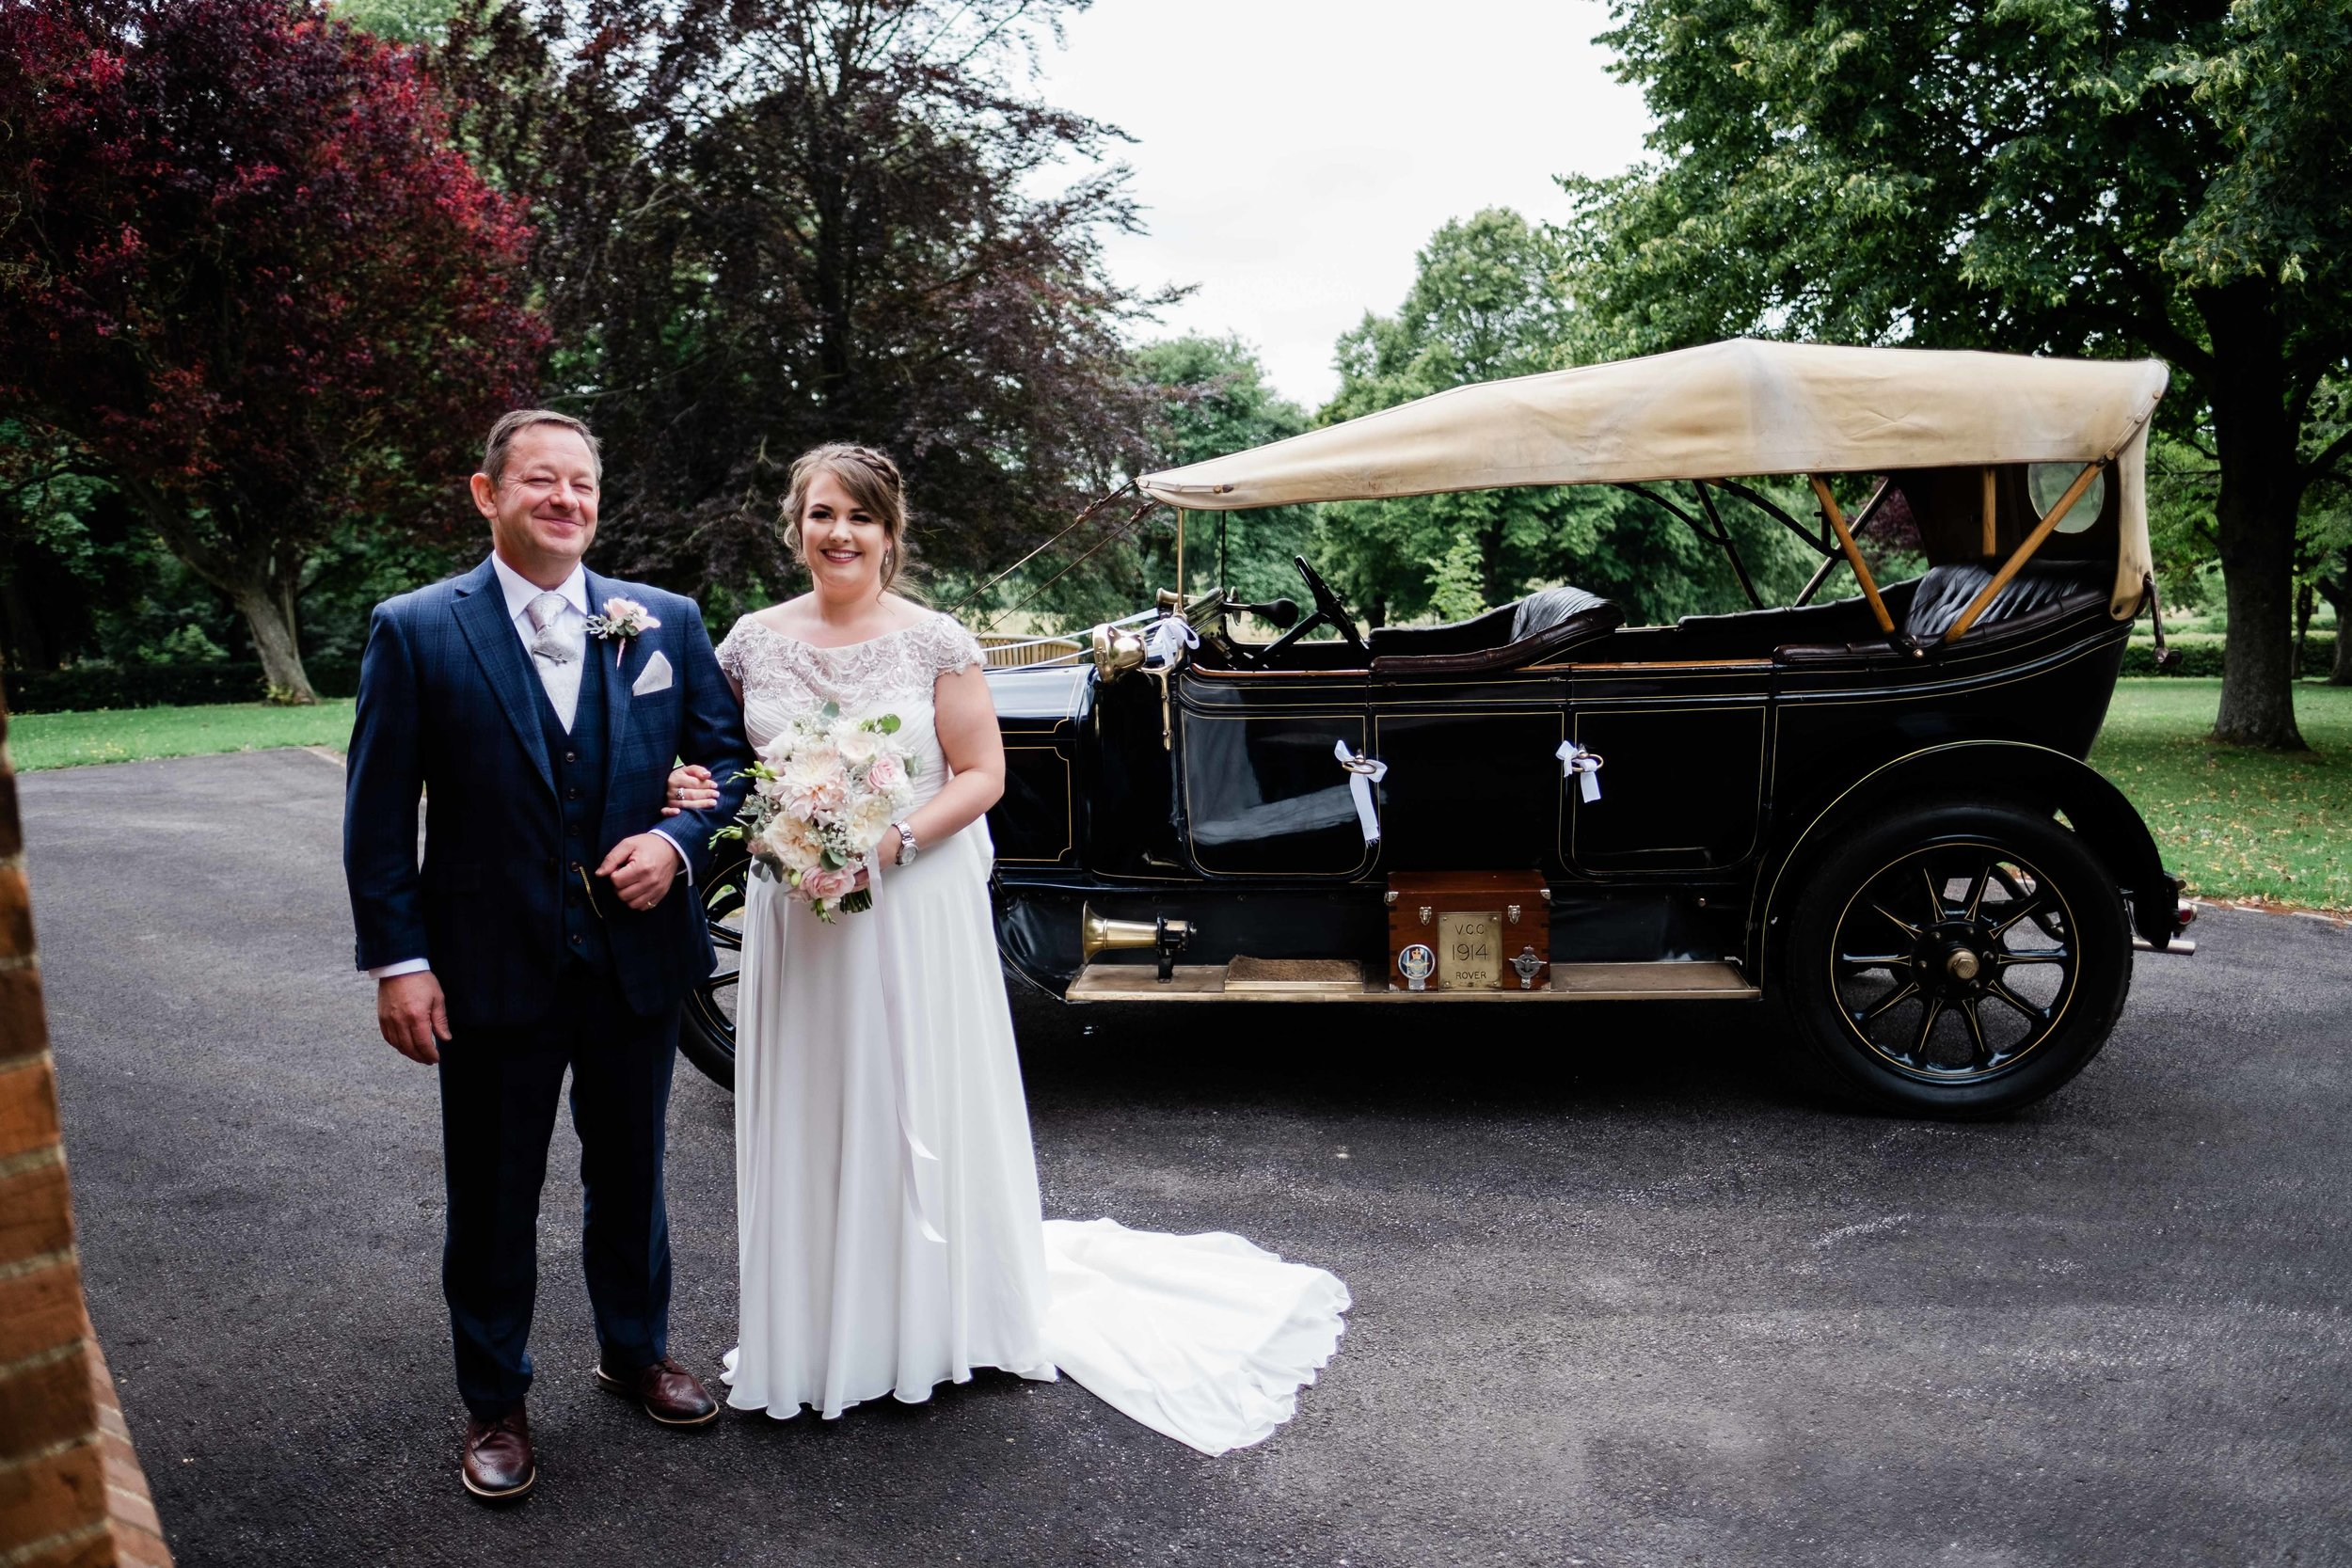 CHOLDERTON RARE BREEDS FARM WEDDINGS